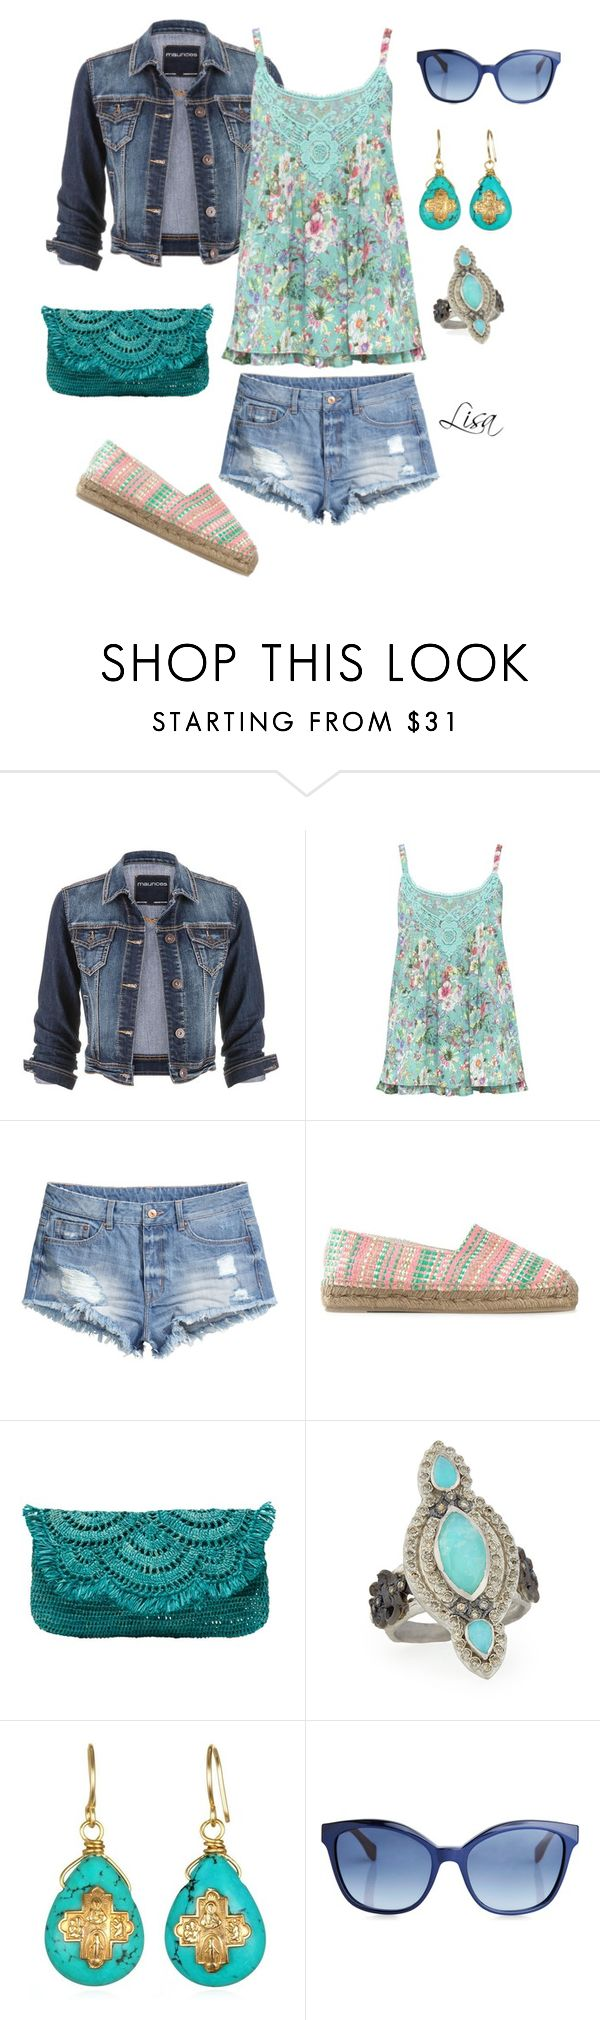 """Double Denim"" by coolmommy44 on Polyvore"